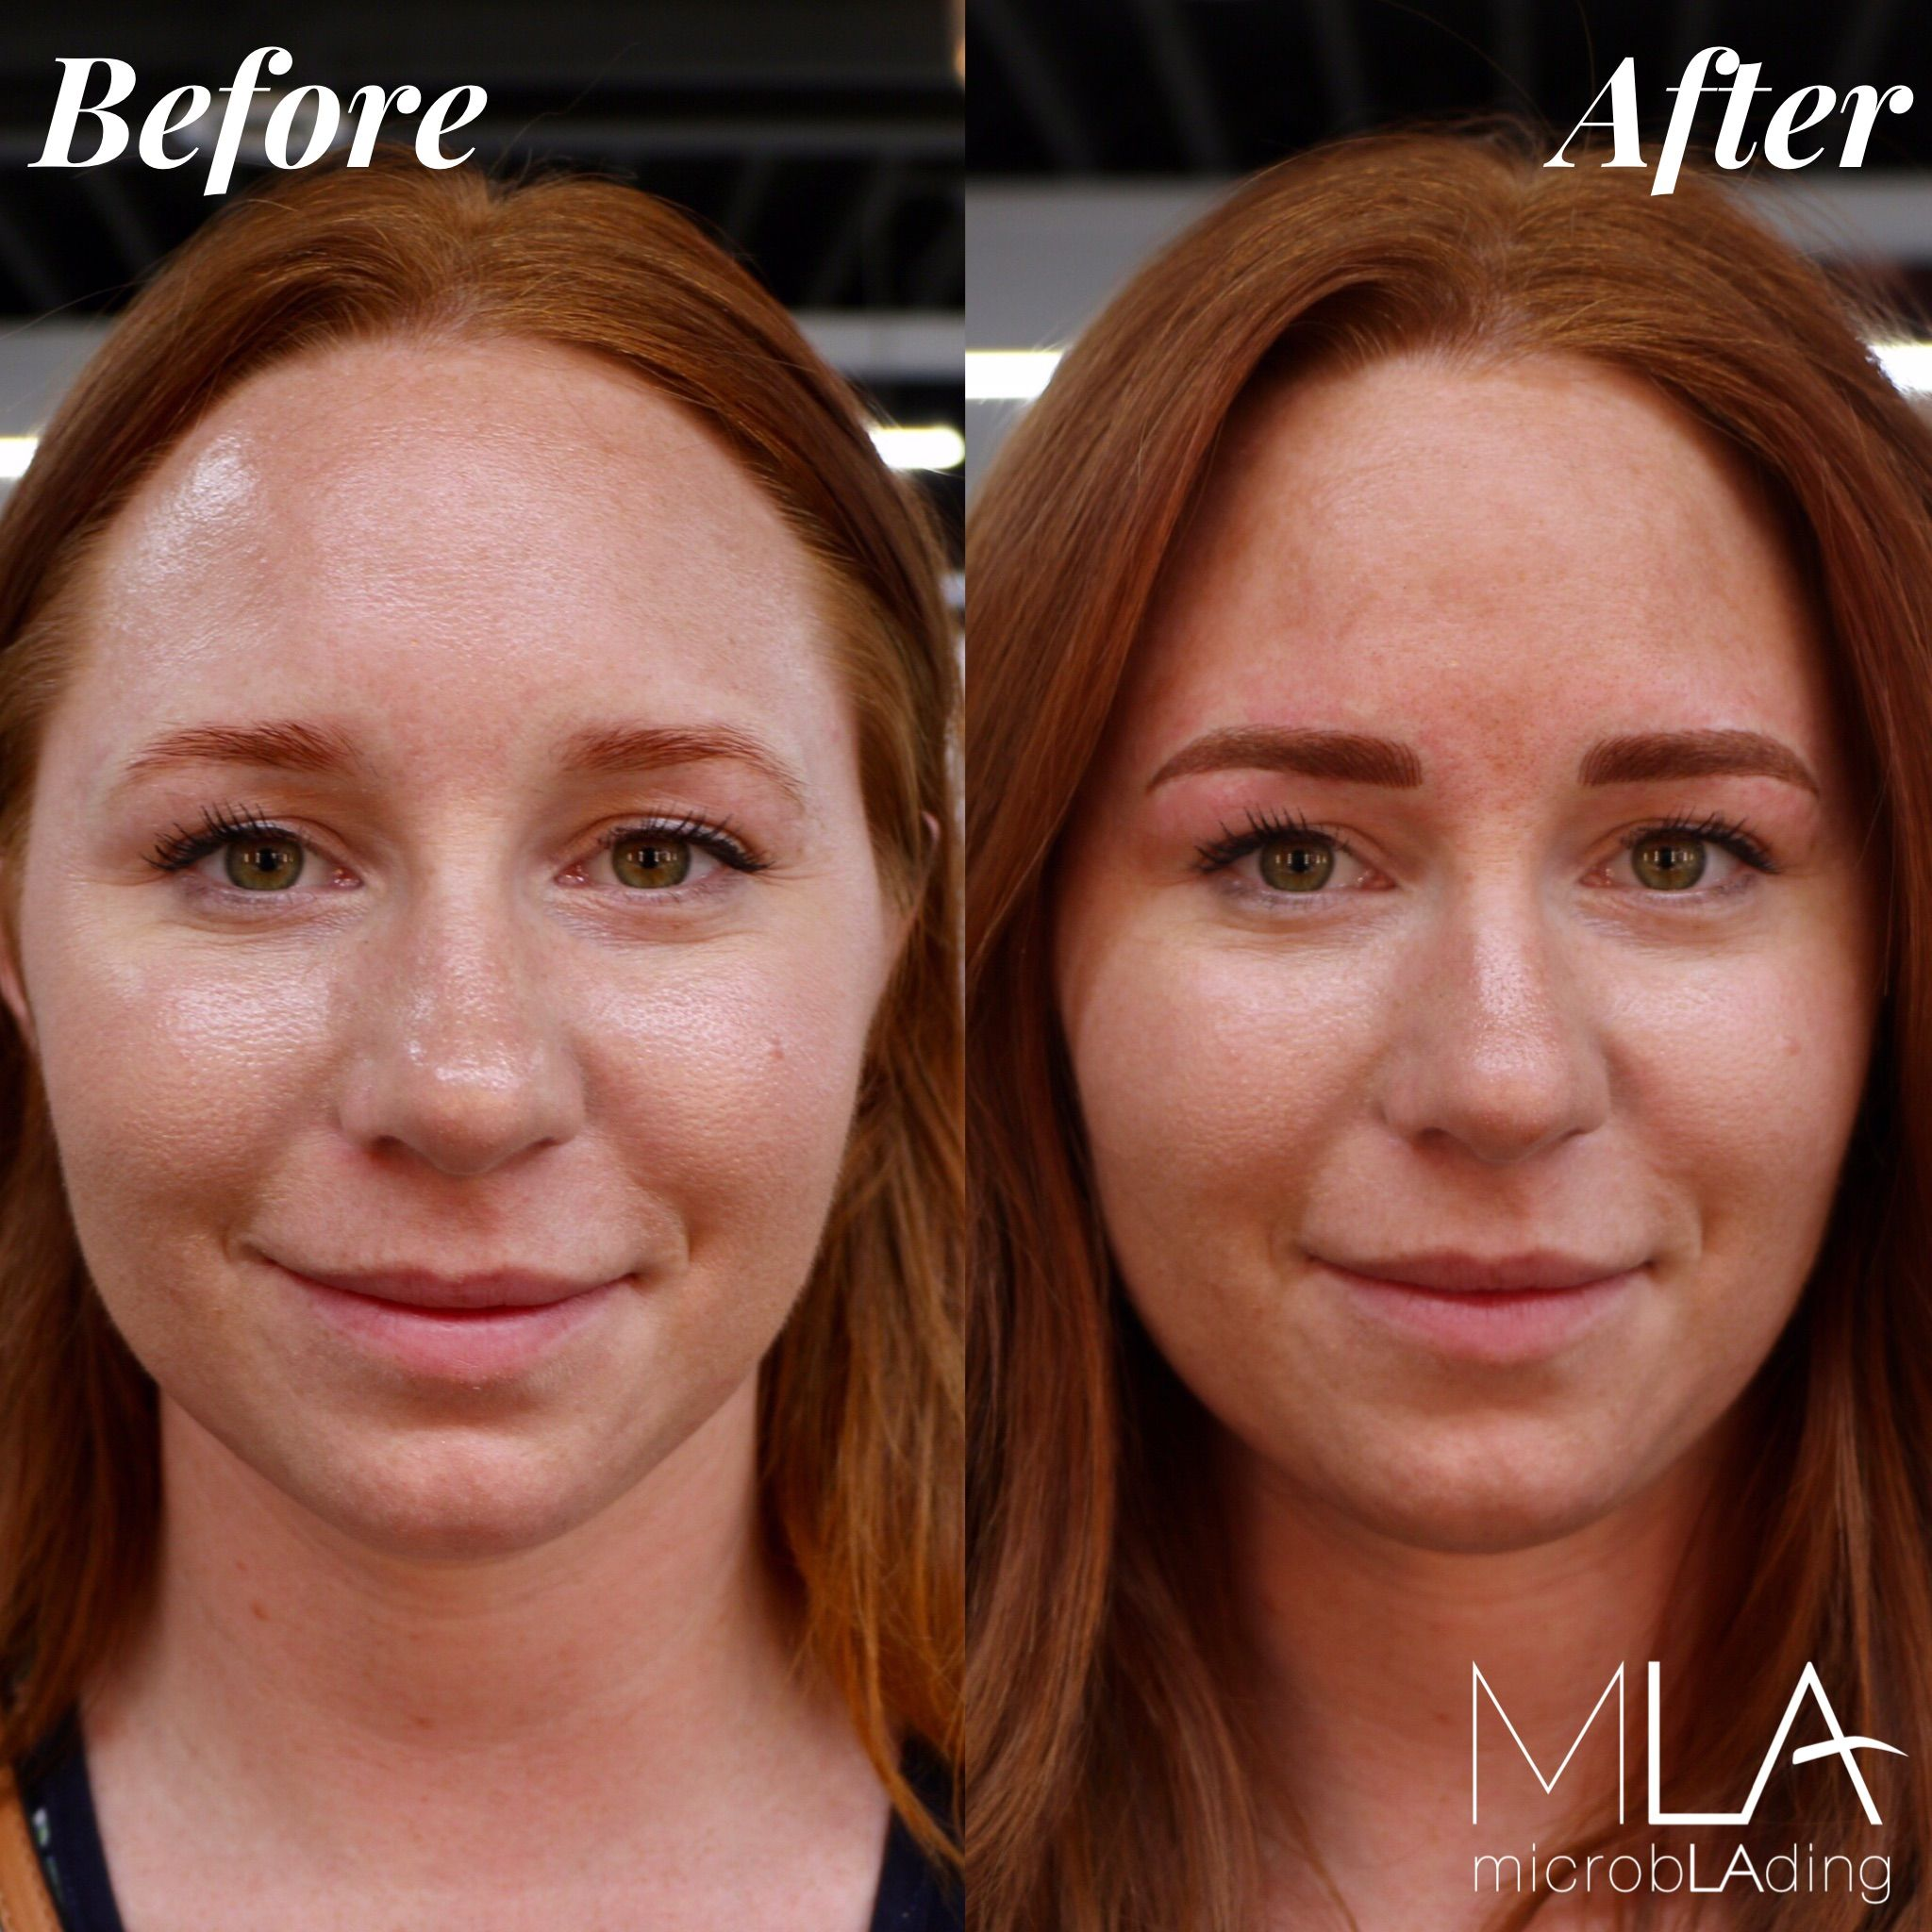 Beautiful Eyebrows By Julie Ha Microblading Works For All